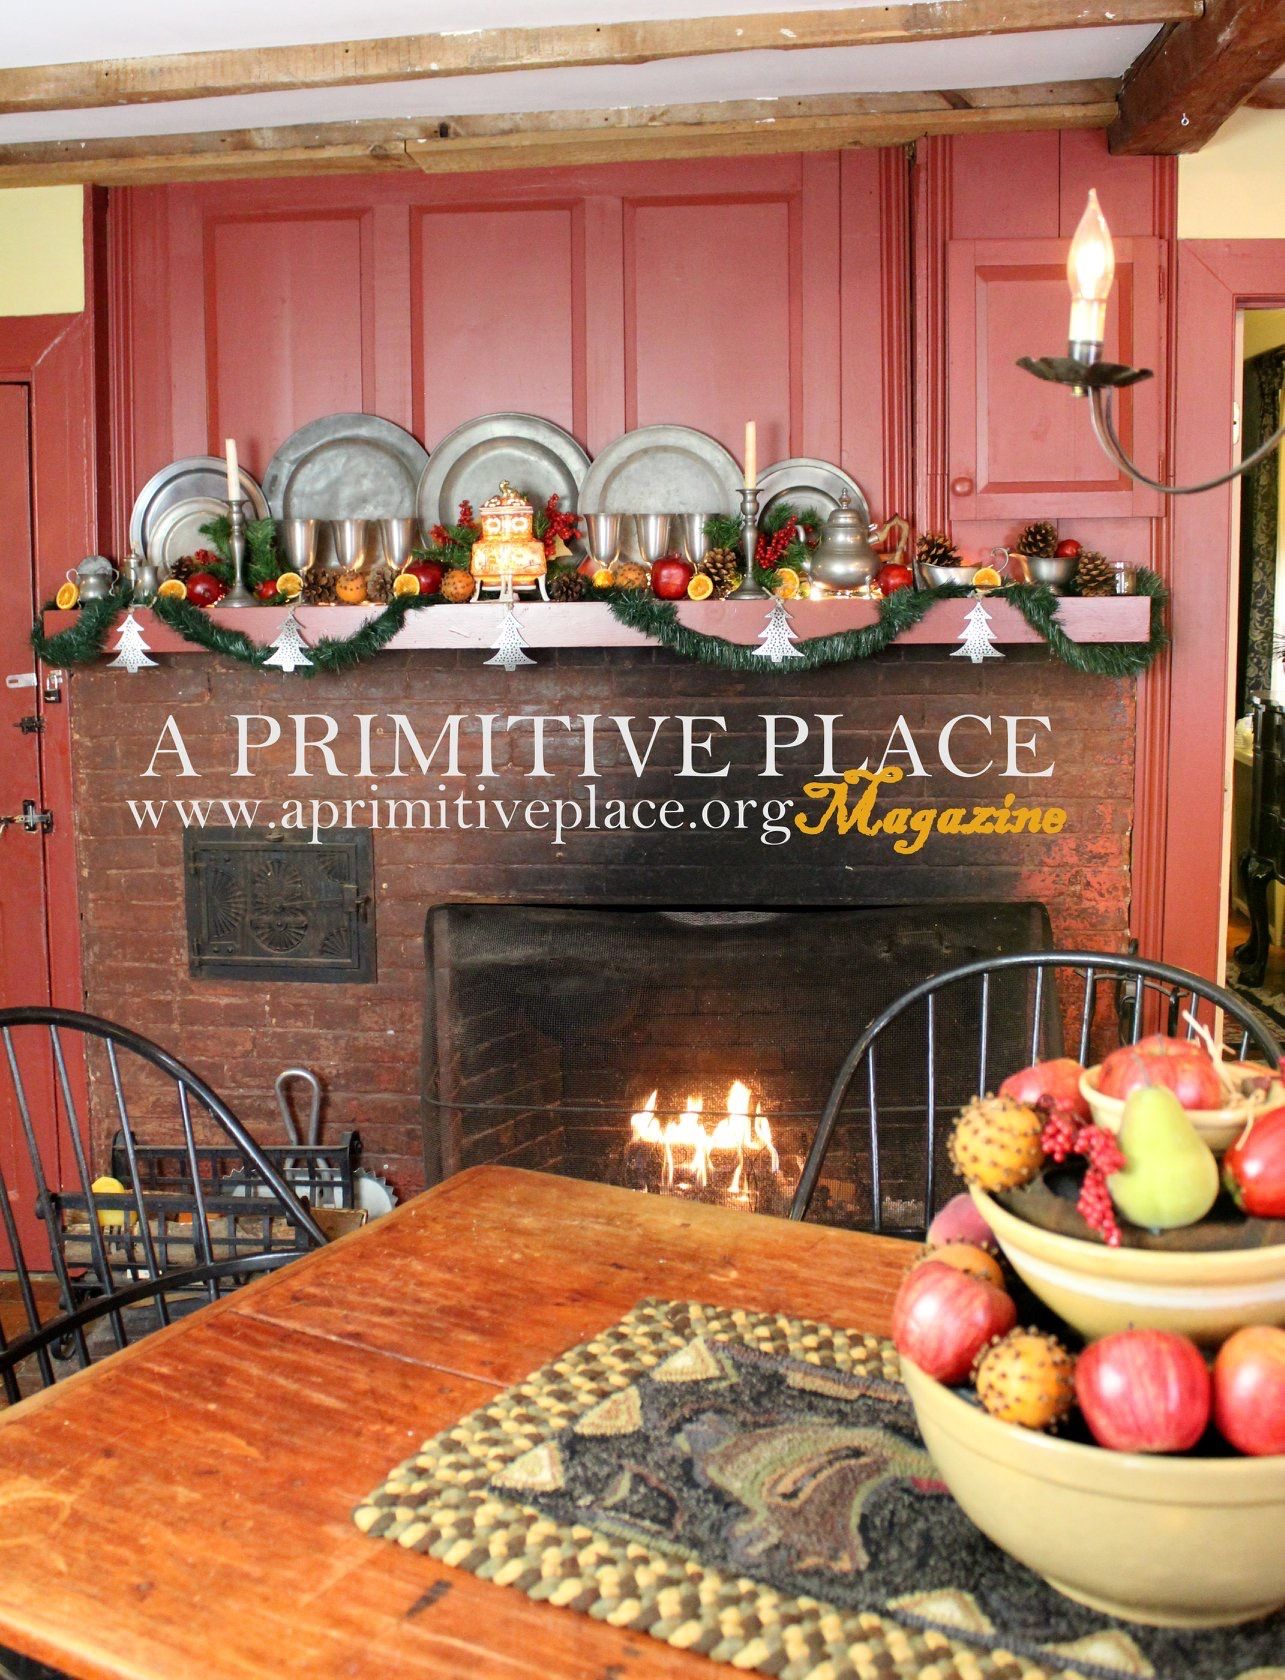 Pin by Sherie Smith on A Primitive Place Christmas in